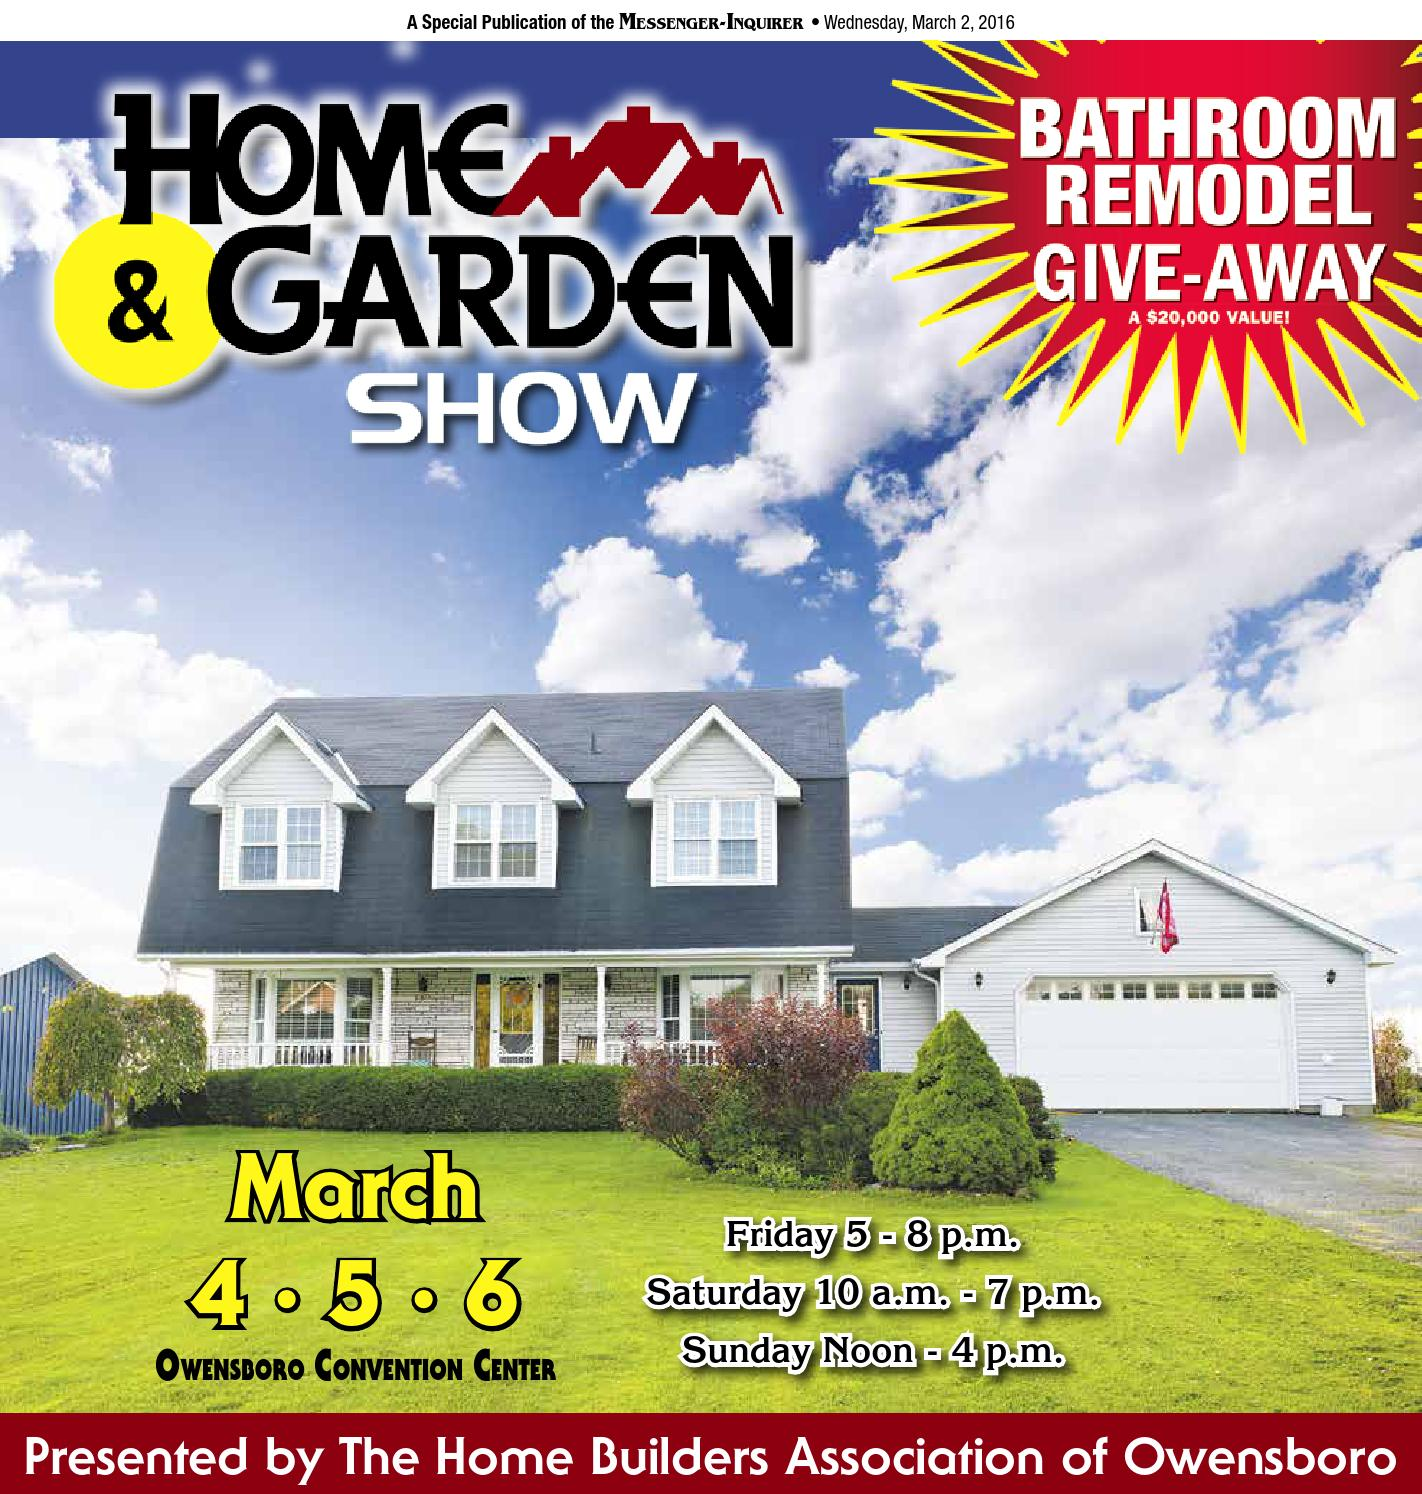 2016 home garden show by messenger inquirer issuu